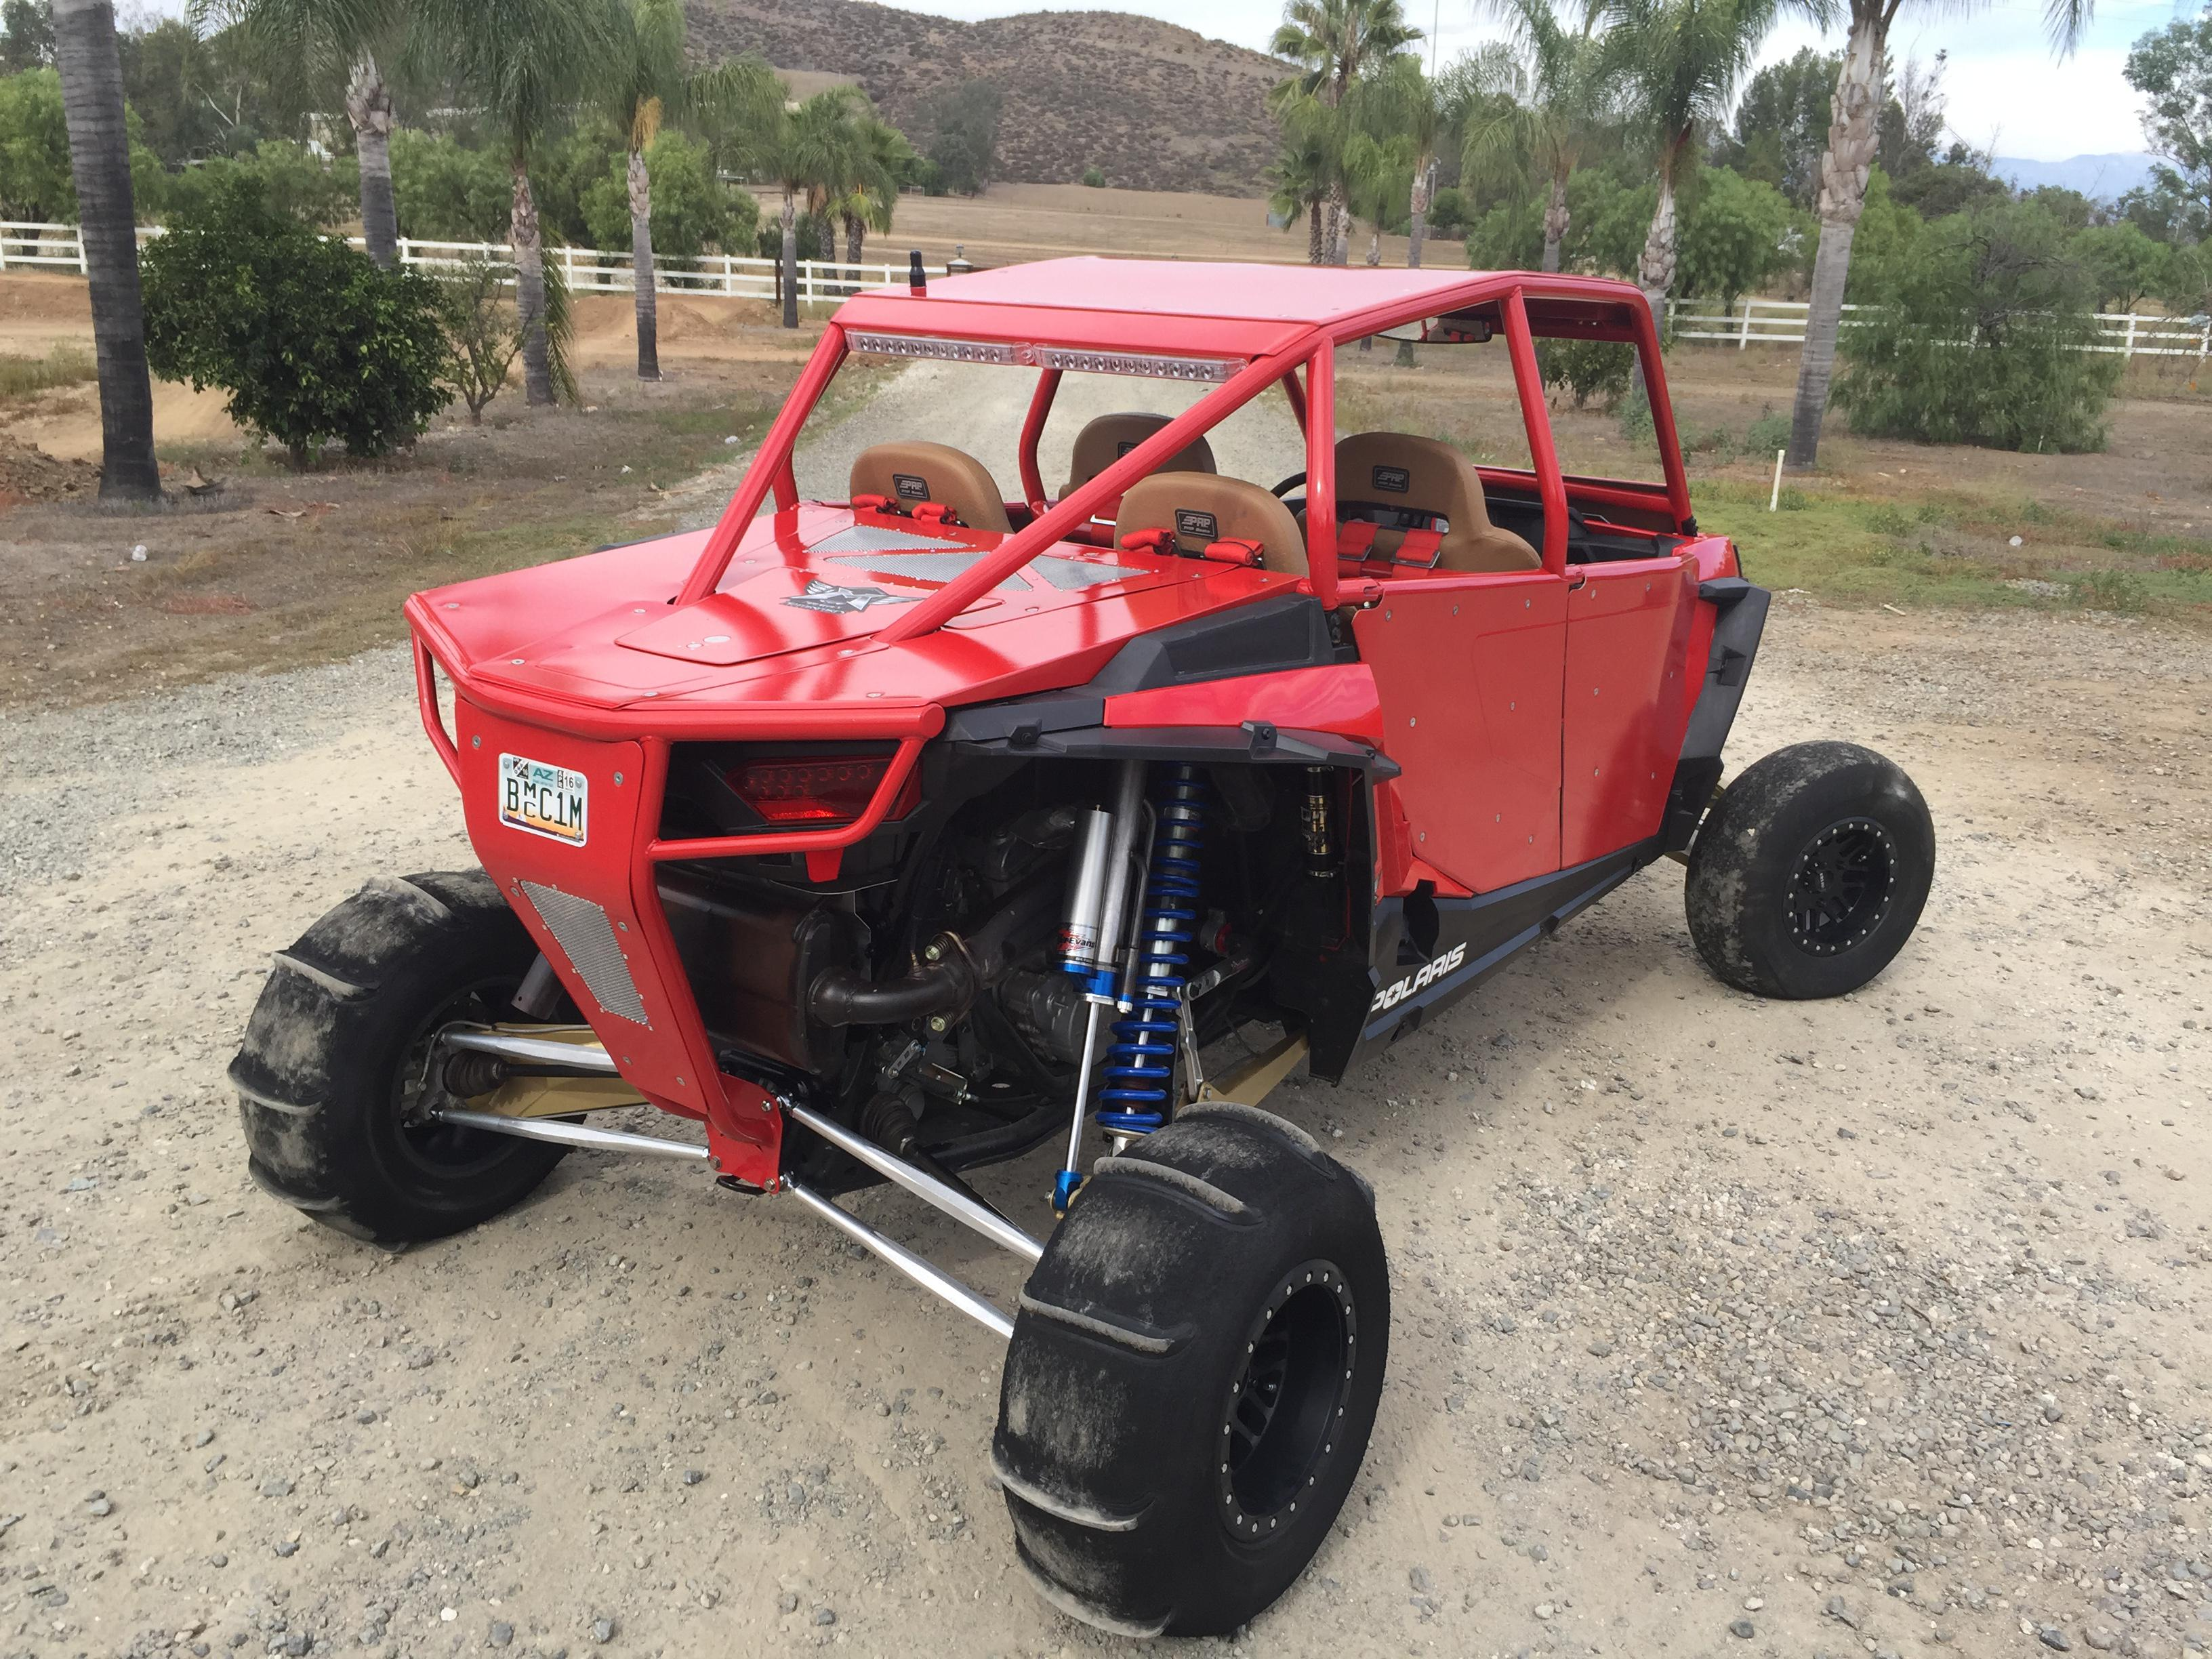 Cagewrx Rzr Xp4 1000 Roll Cages 4 Seater Utv Roll Cages ...